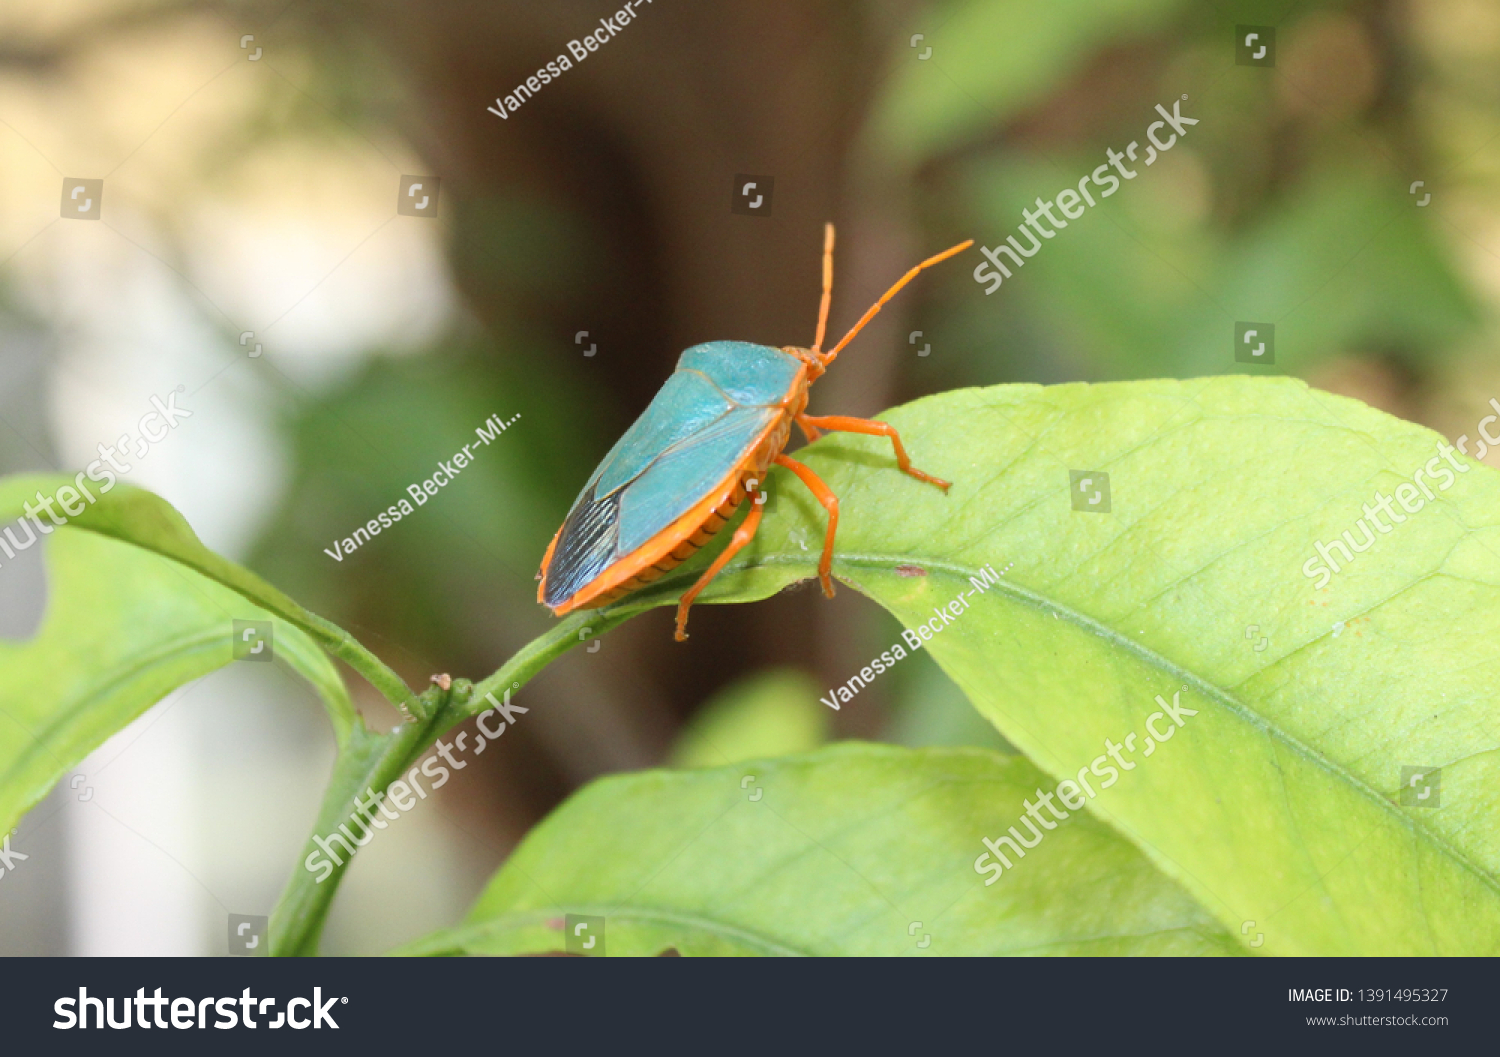 Turquiose Shield bug on a leaf in garden Merida, Mexico #1391495327